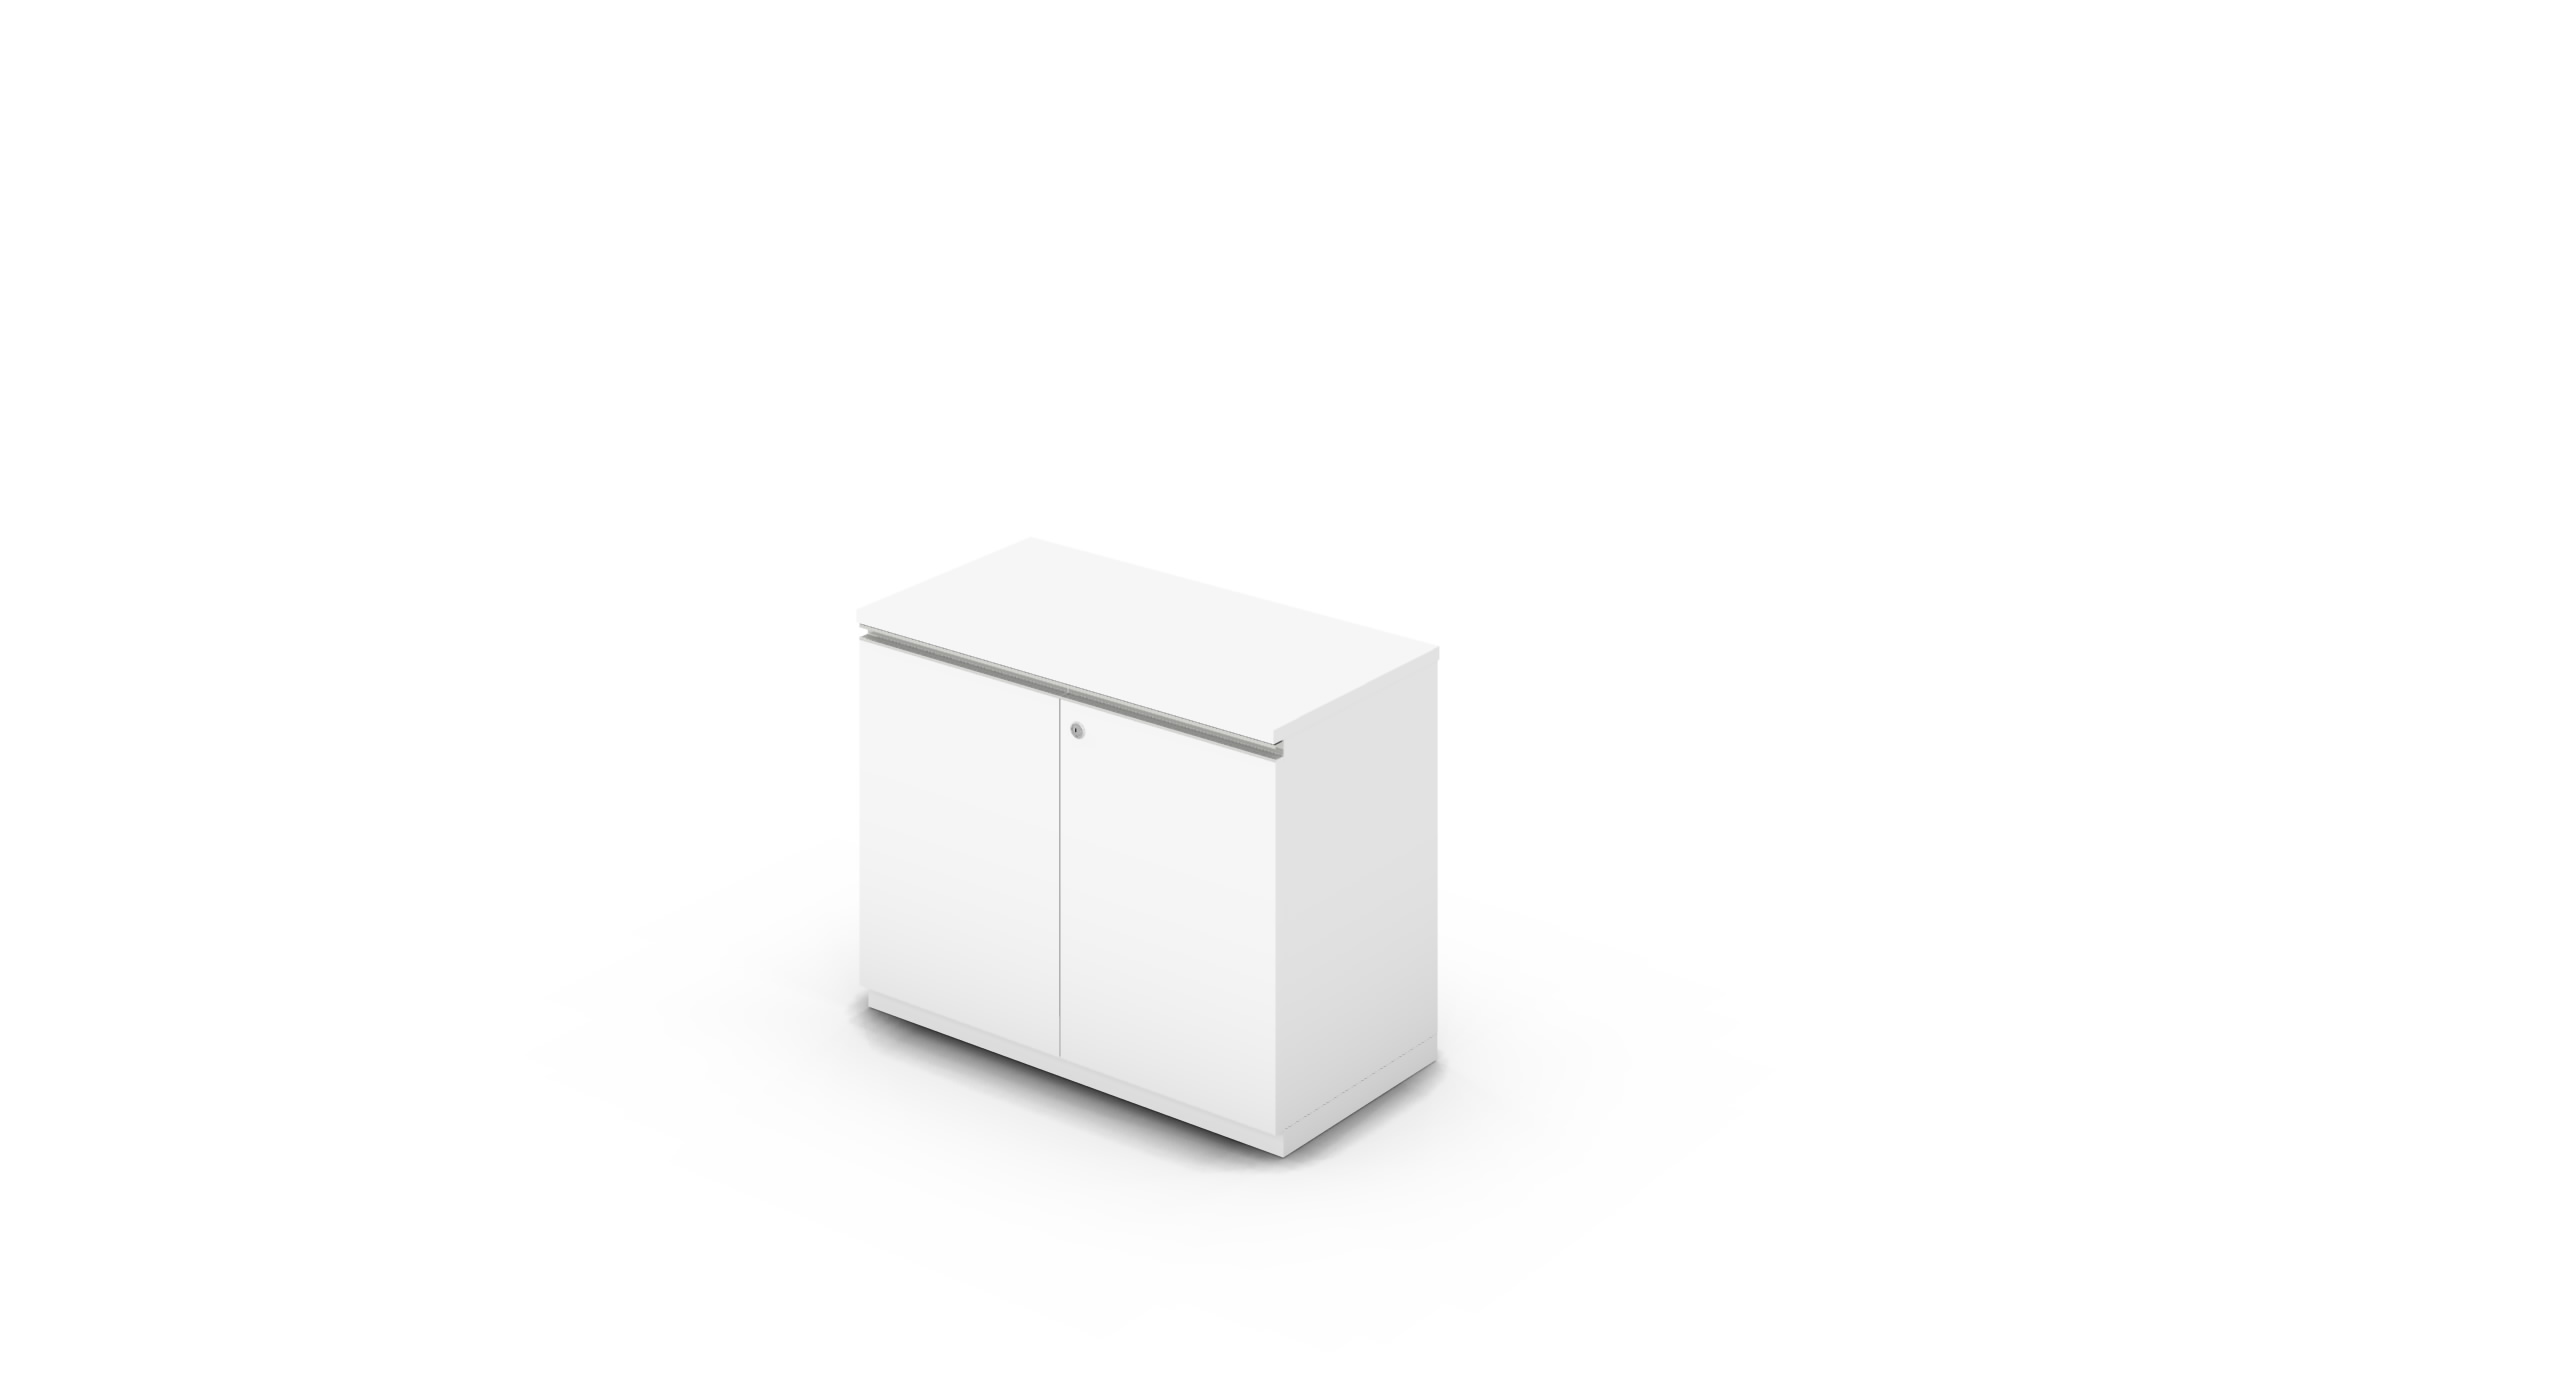 Cabinet_900x450x775_HD_White_Rail_WithCylinder